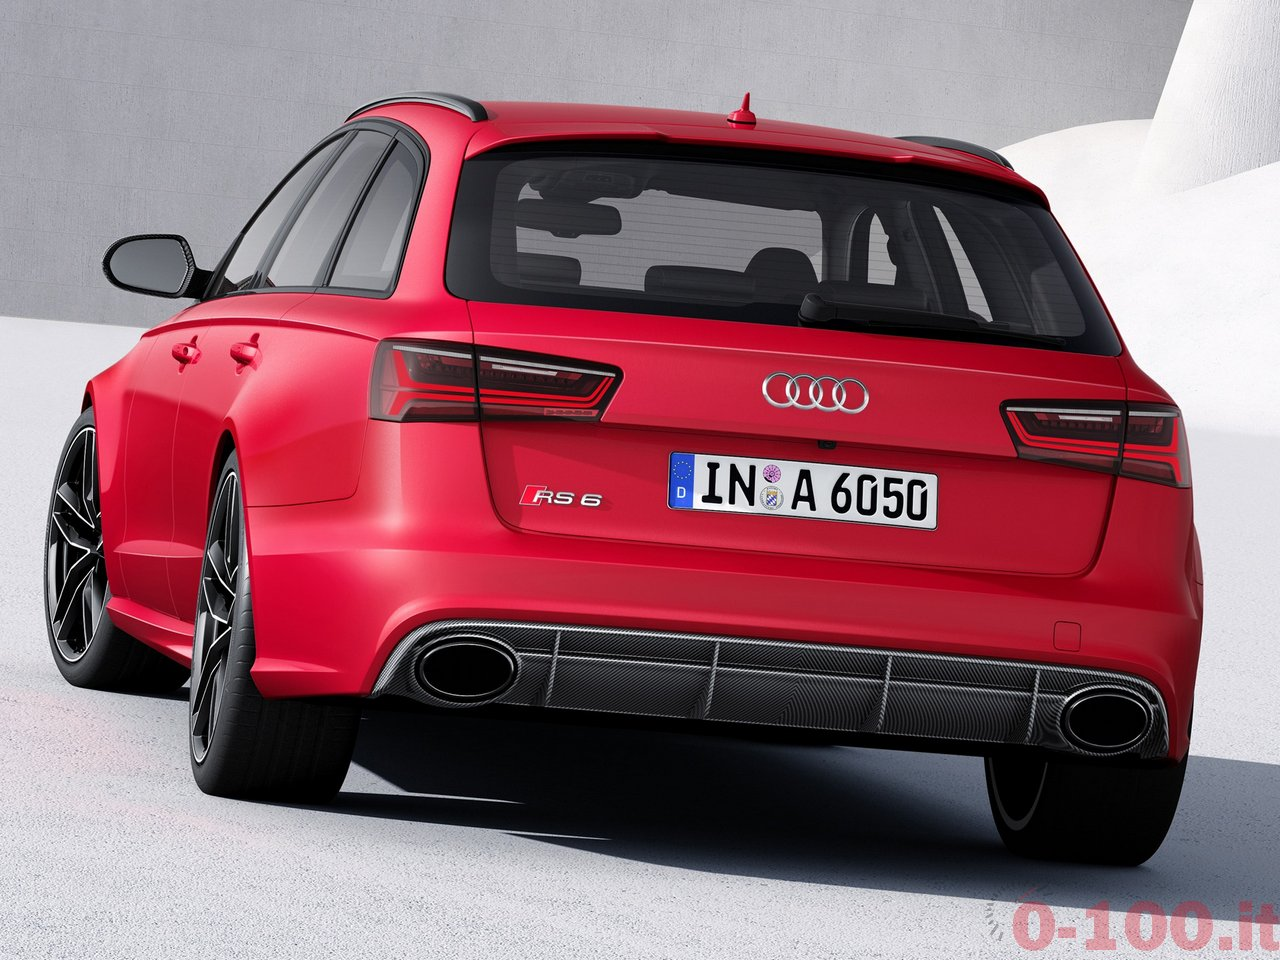 audi s6 e rs6 i prezzi sul mercato italiano 0. Black Bedroom Furniture Sets. Home Design Ideas